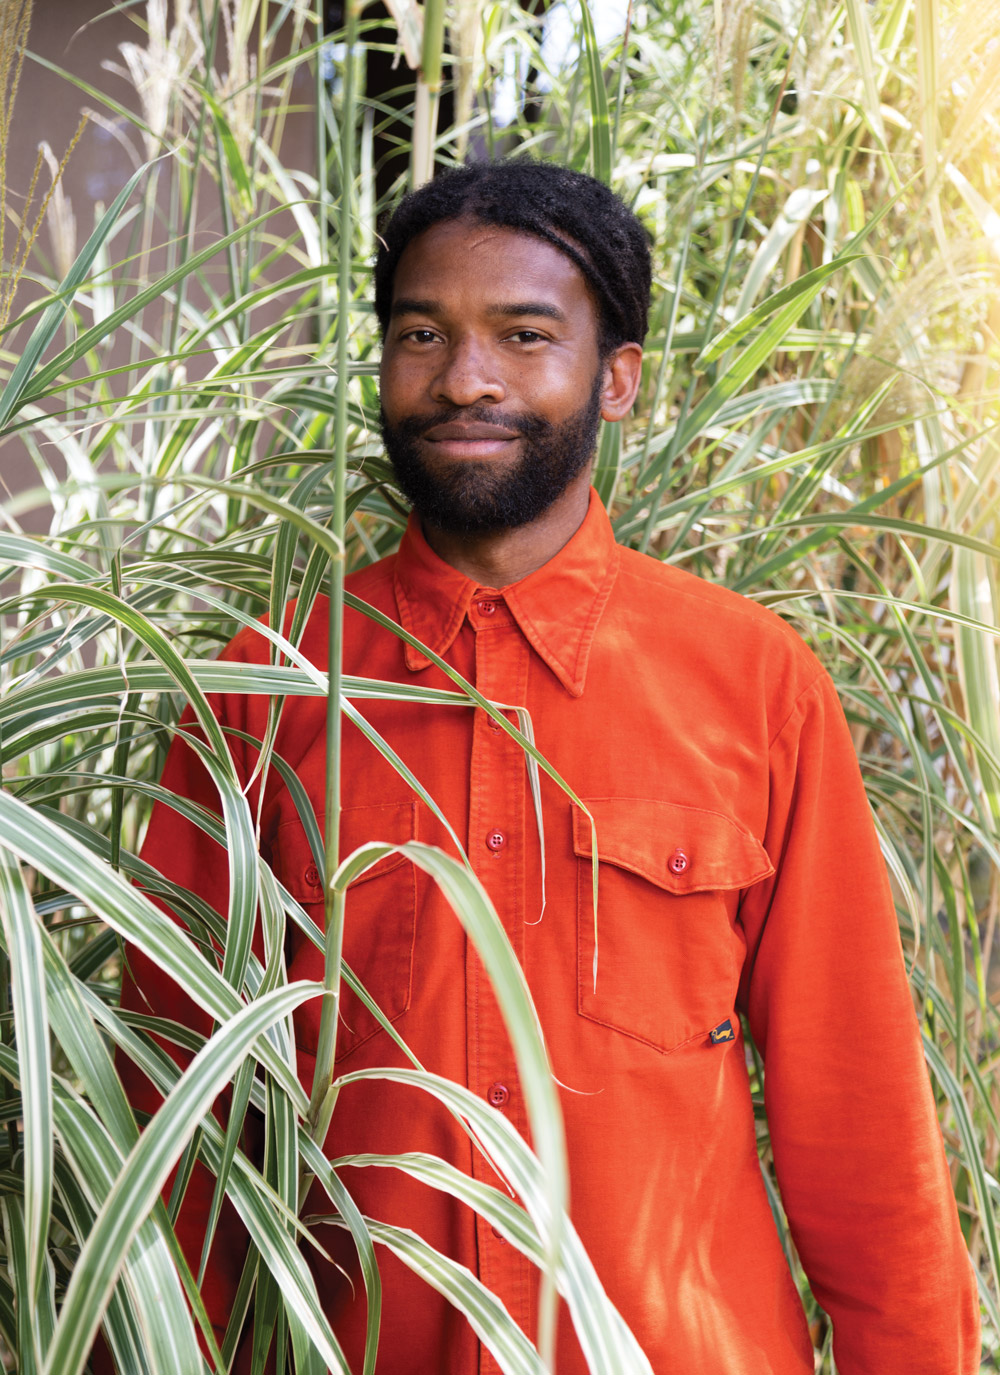 Eric Mack in his home garden, which doubles as a studio space